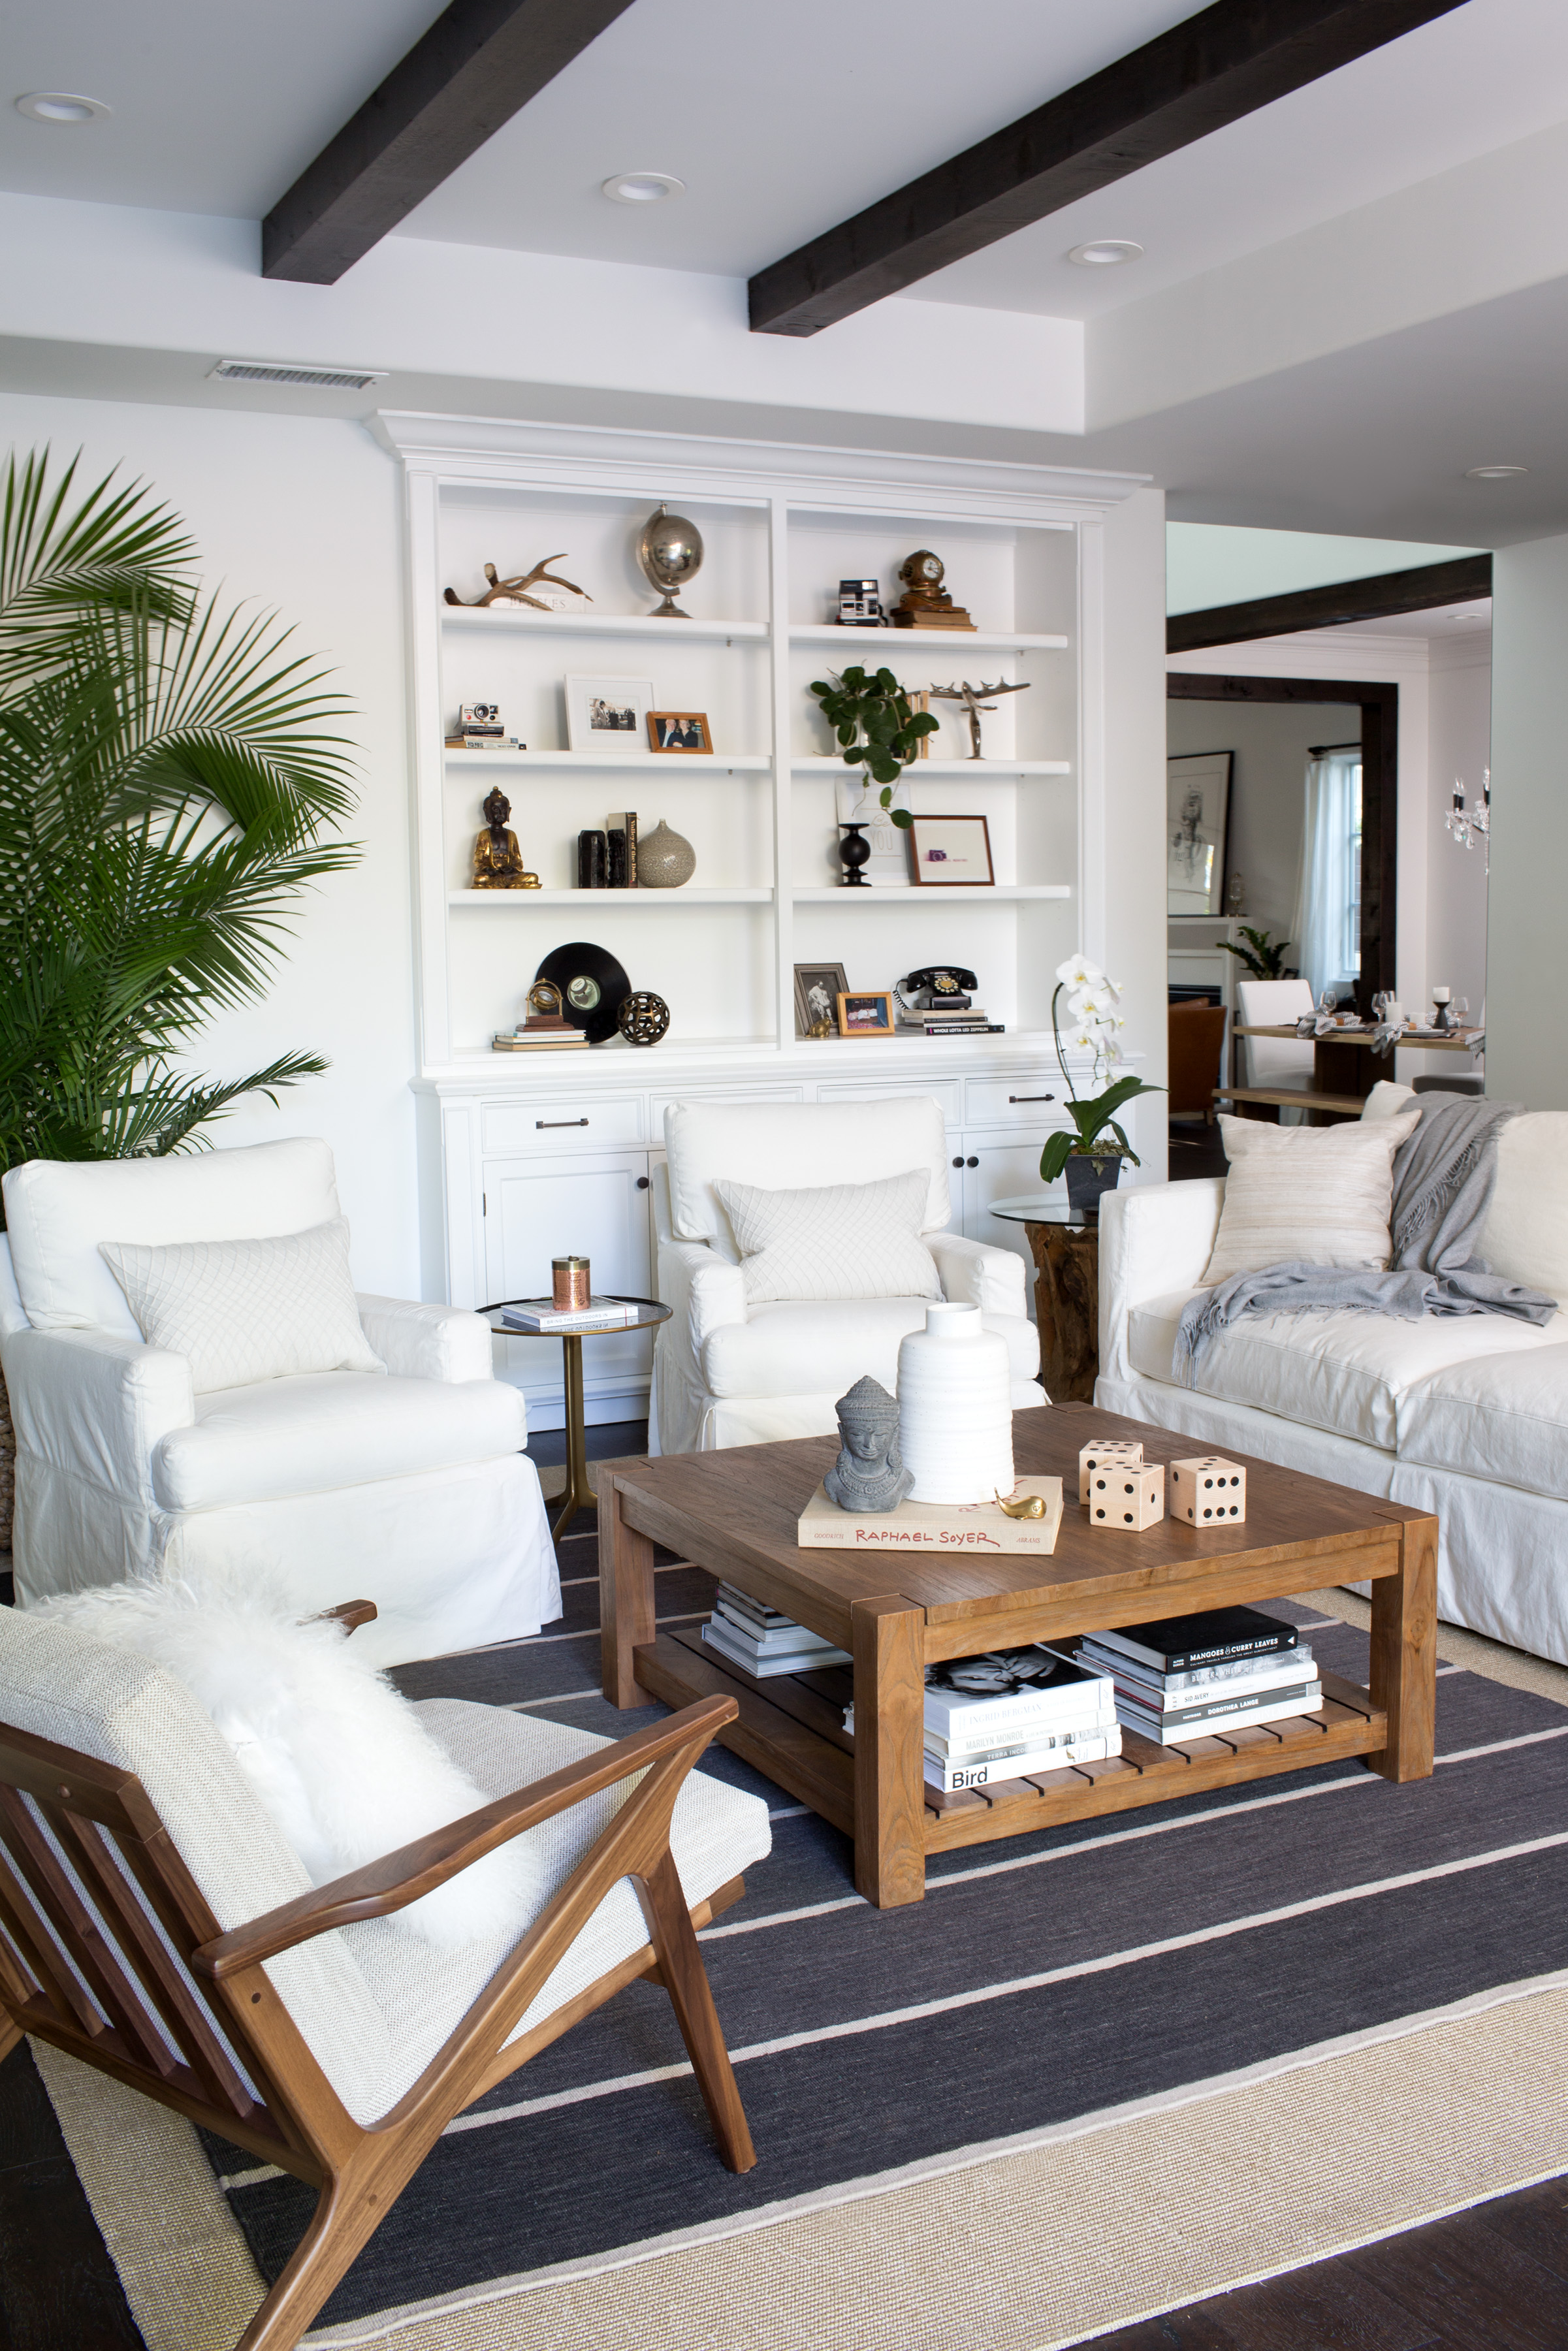 brittany snow redecorates her los angeles home people crate and barrel marilyn accent table courtesy scott clark for elephant chair target stools benches gallerie art round